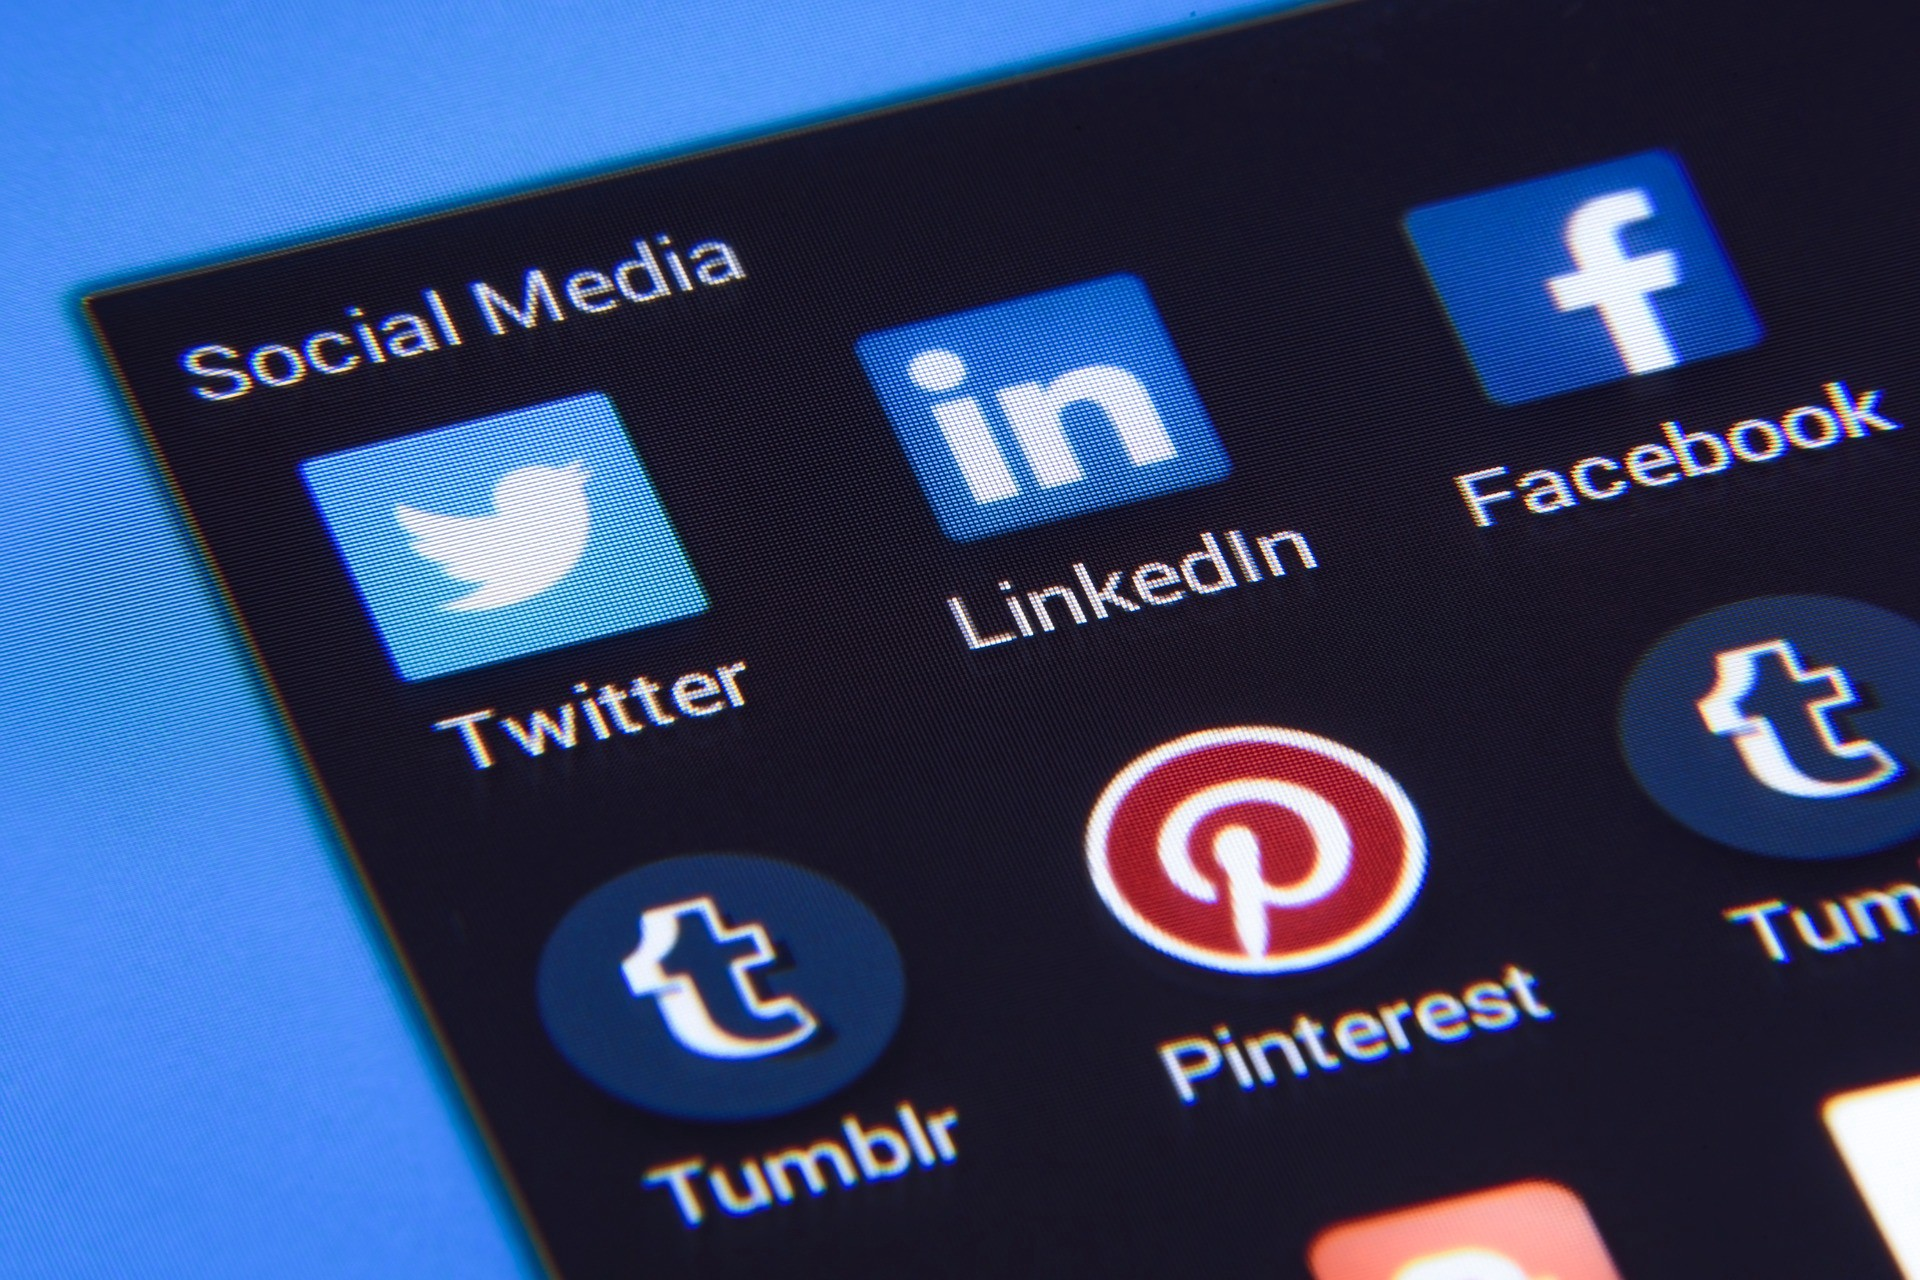 How to Extract and Process Data from Social Media